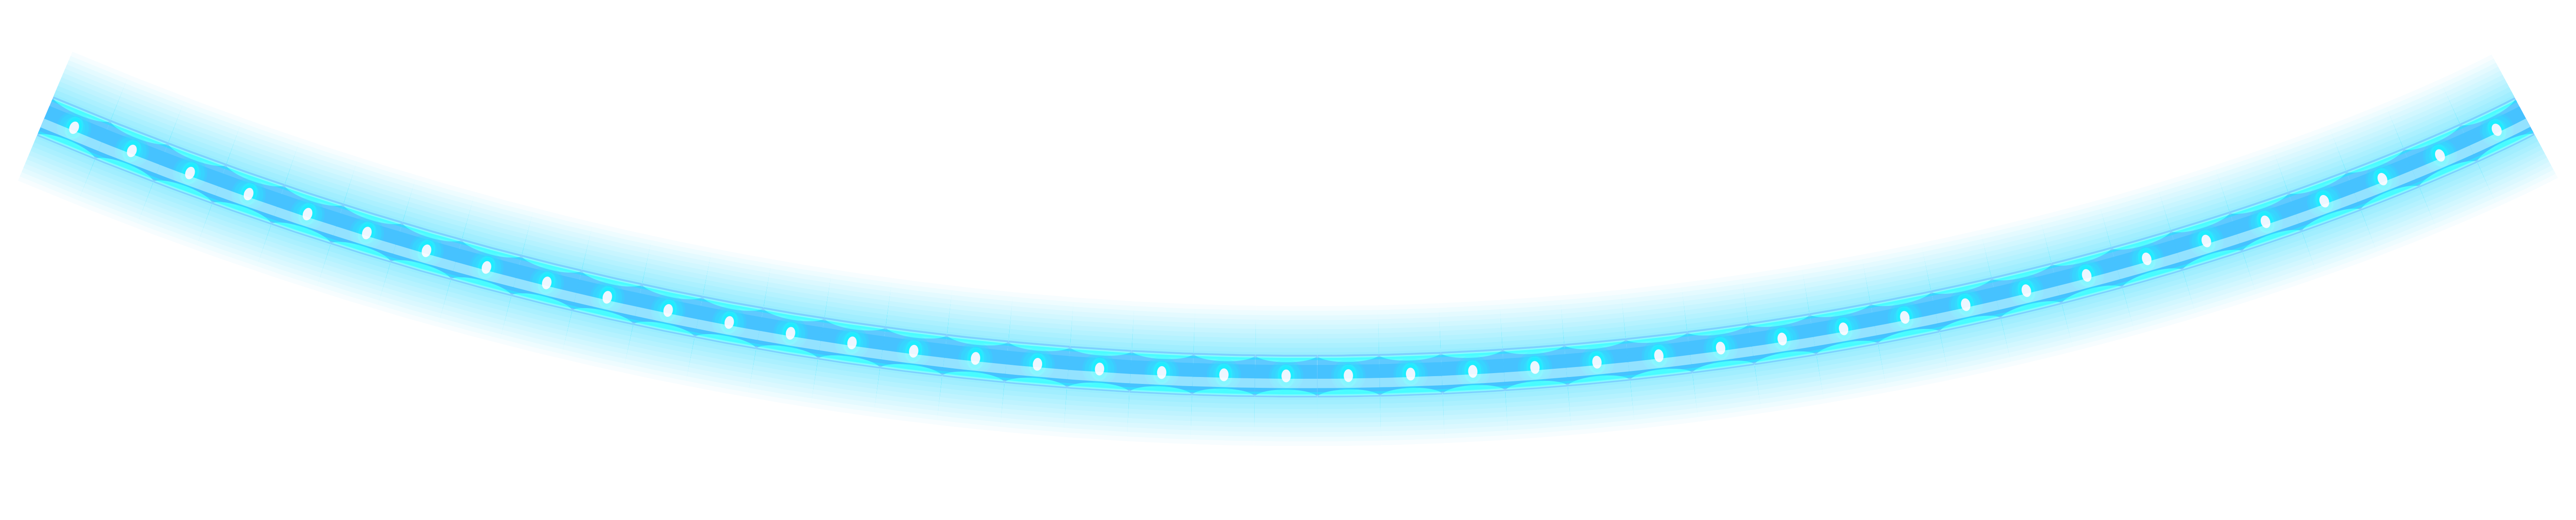 Glowing line png. Blue christmas tube clipart